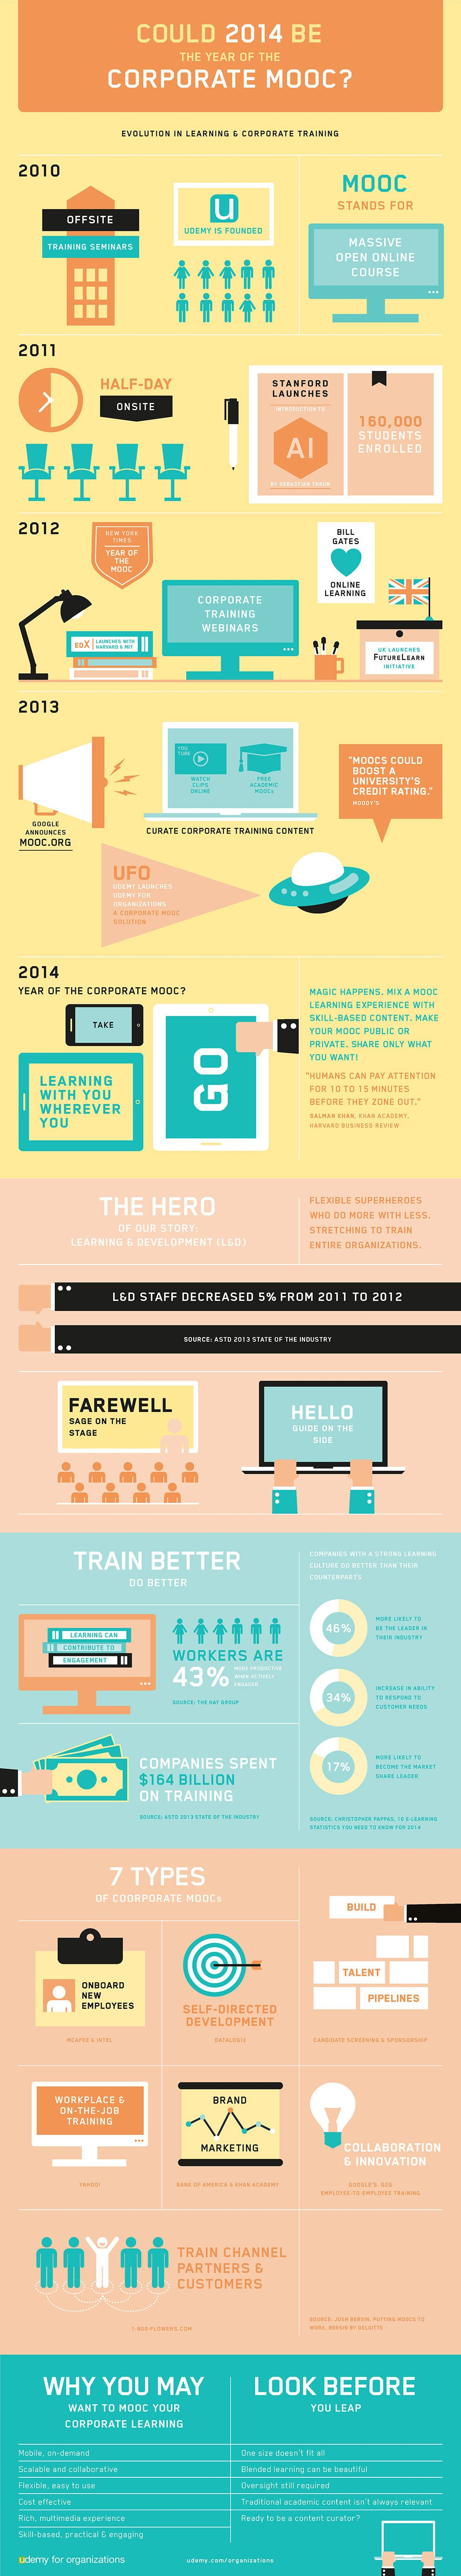 Is 2014 the Year of the Corporate MOOC? Infographic